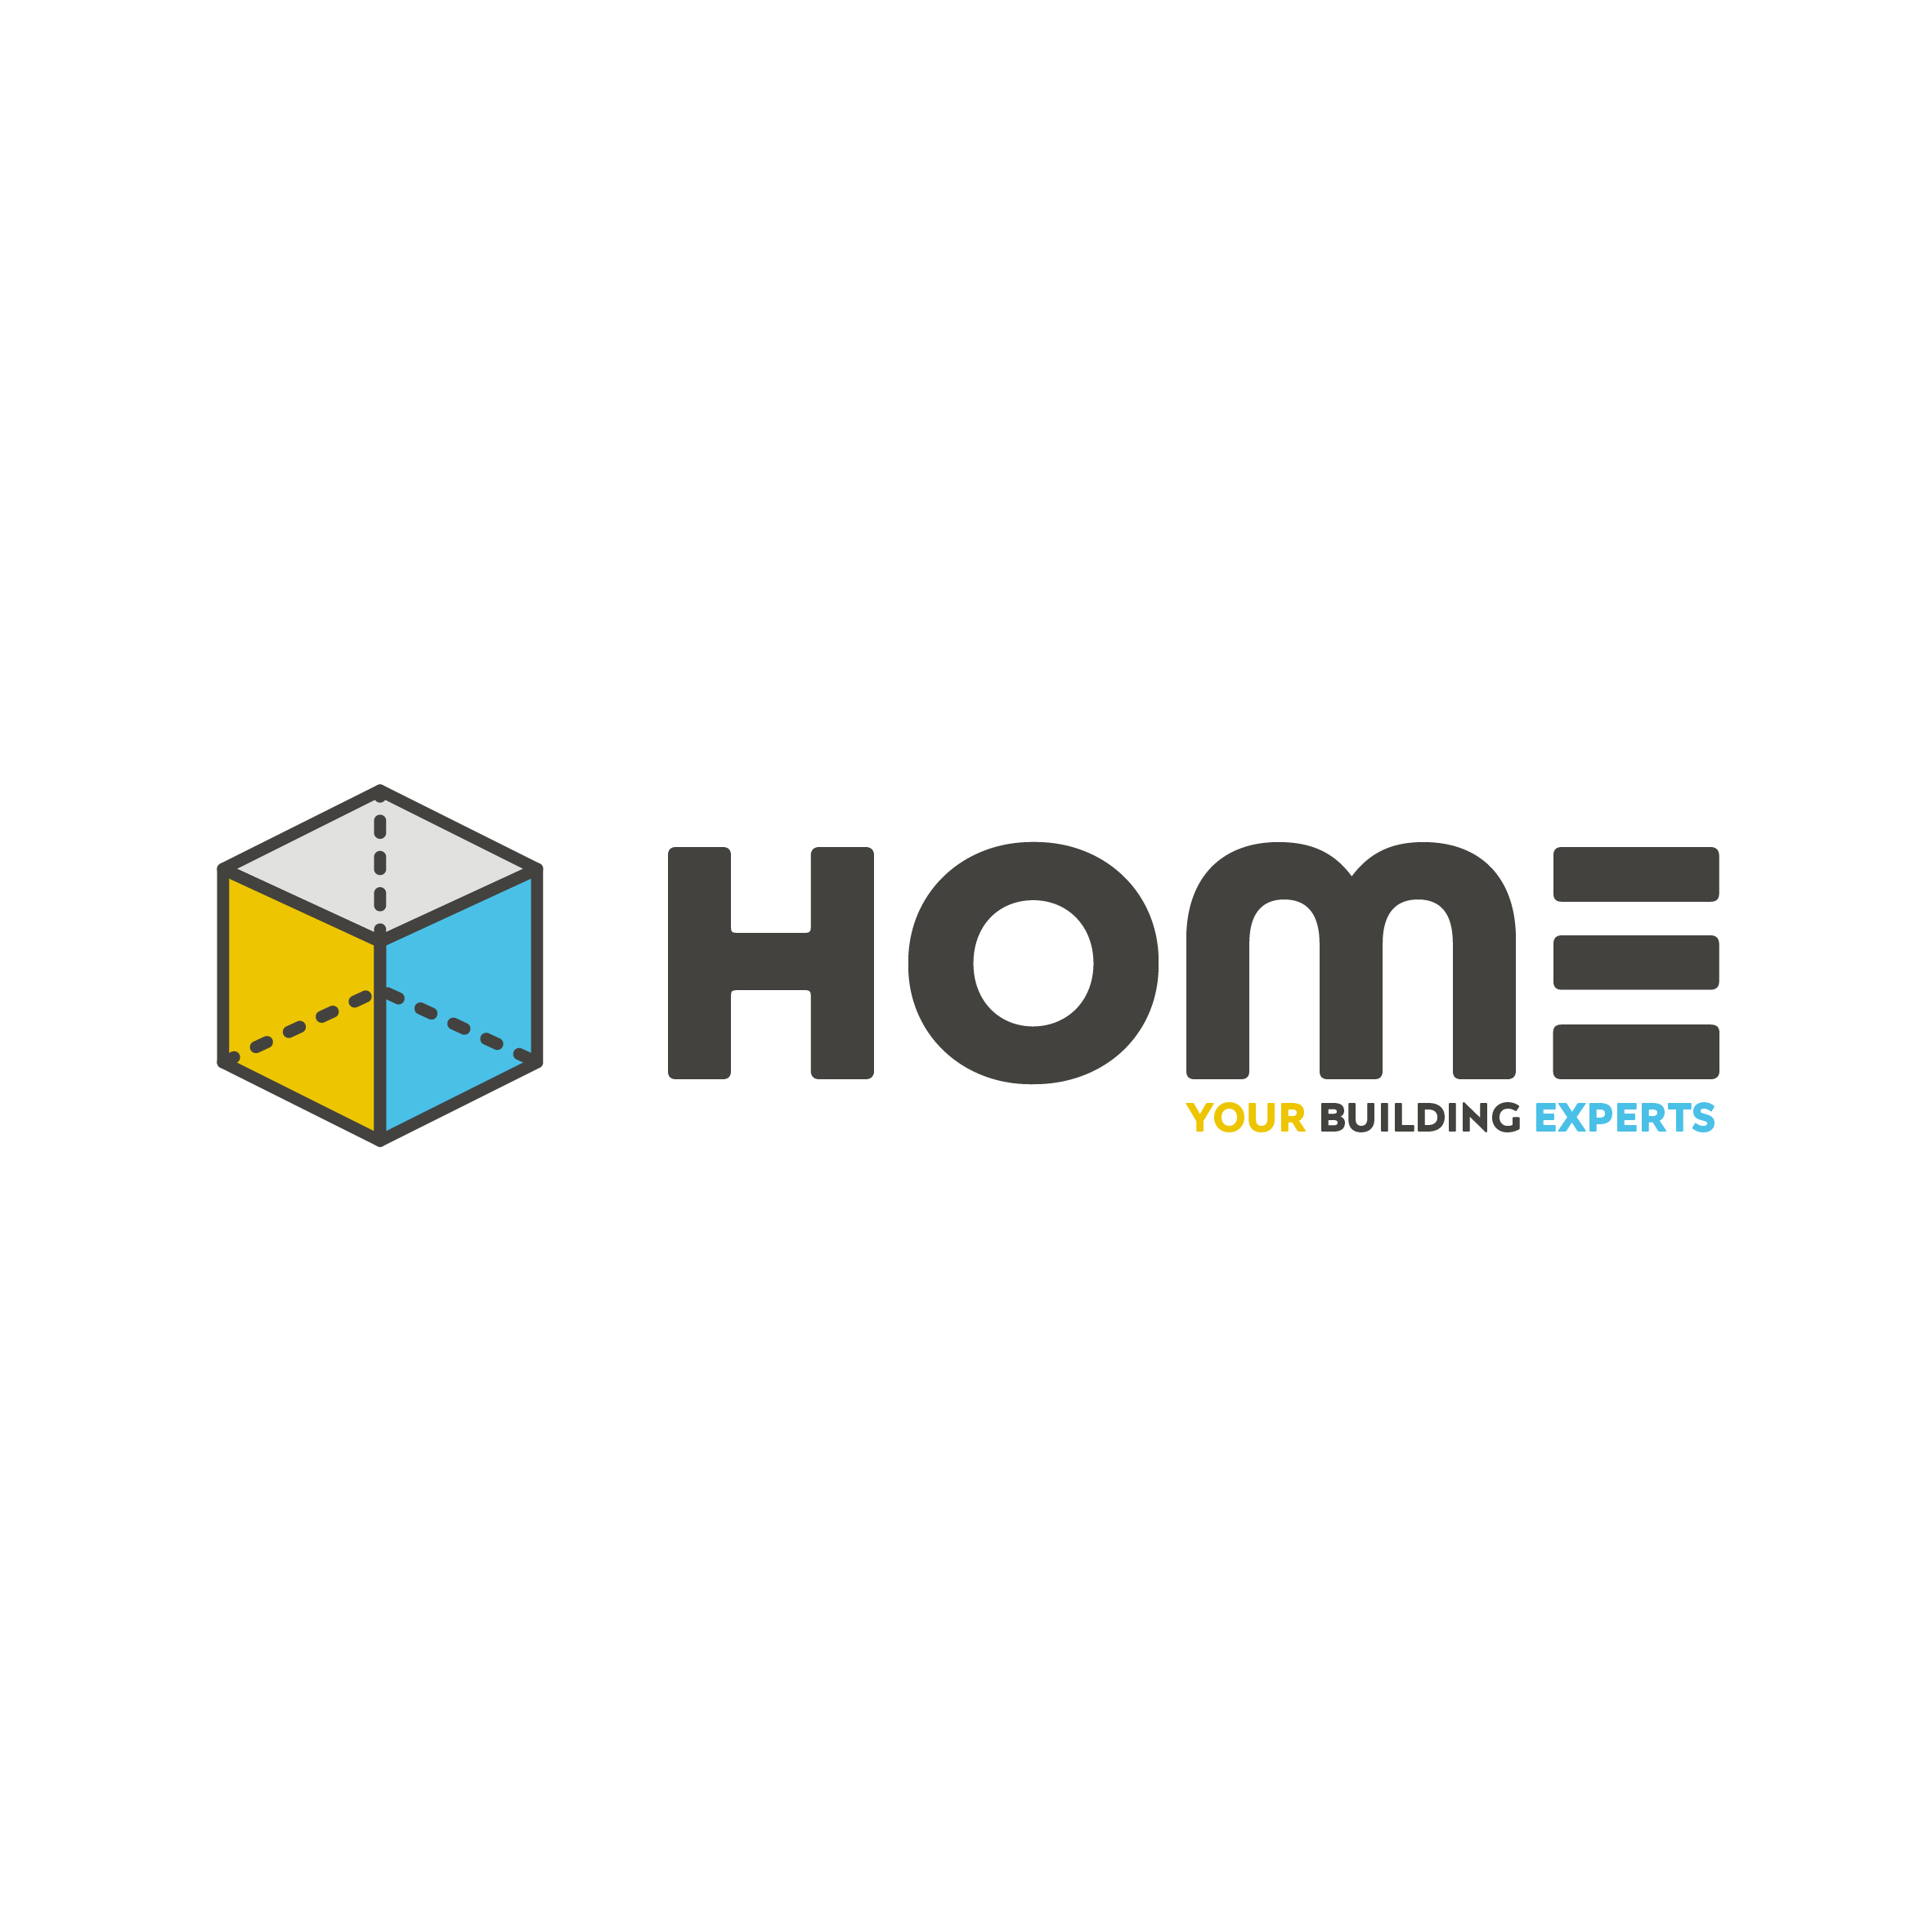 home the building experts-01